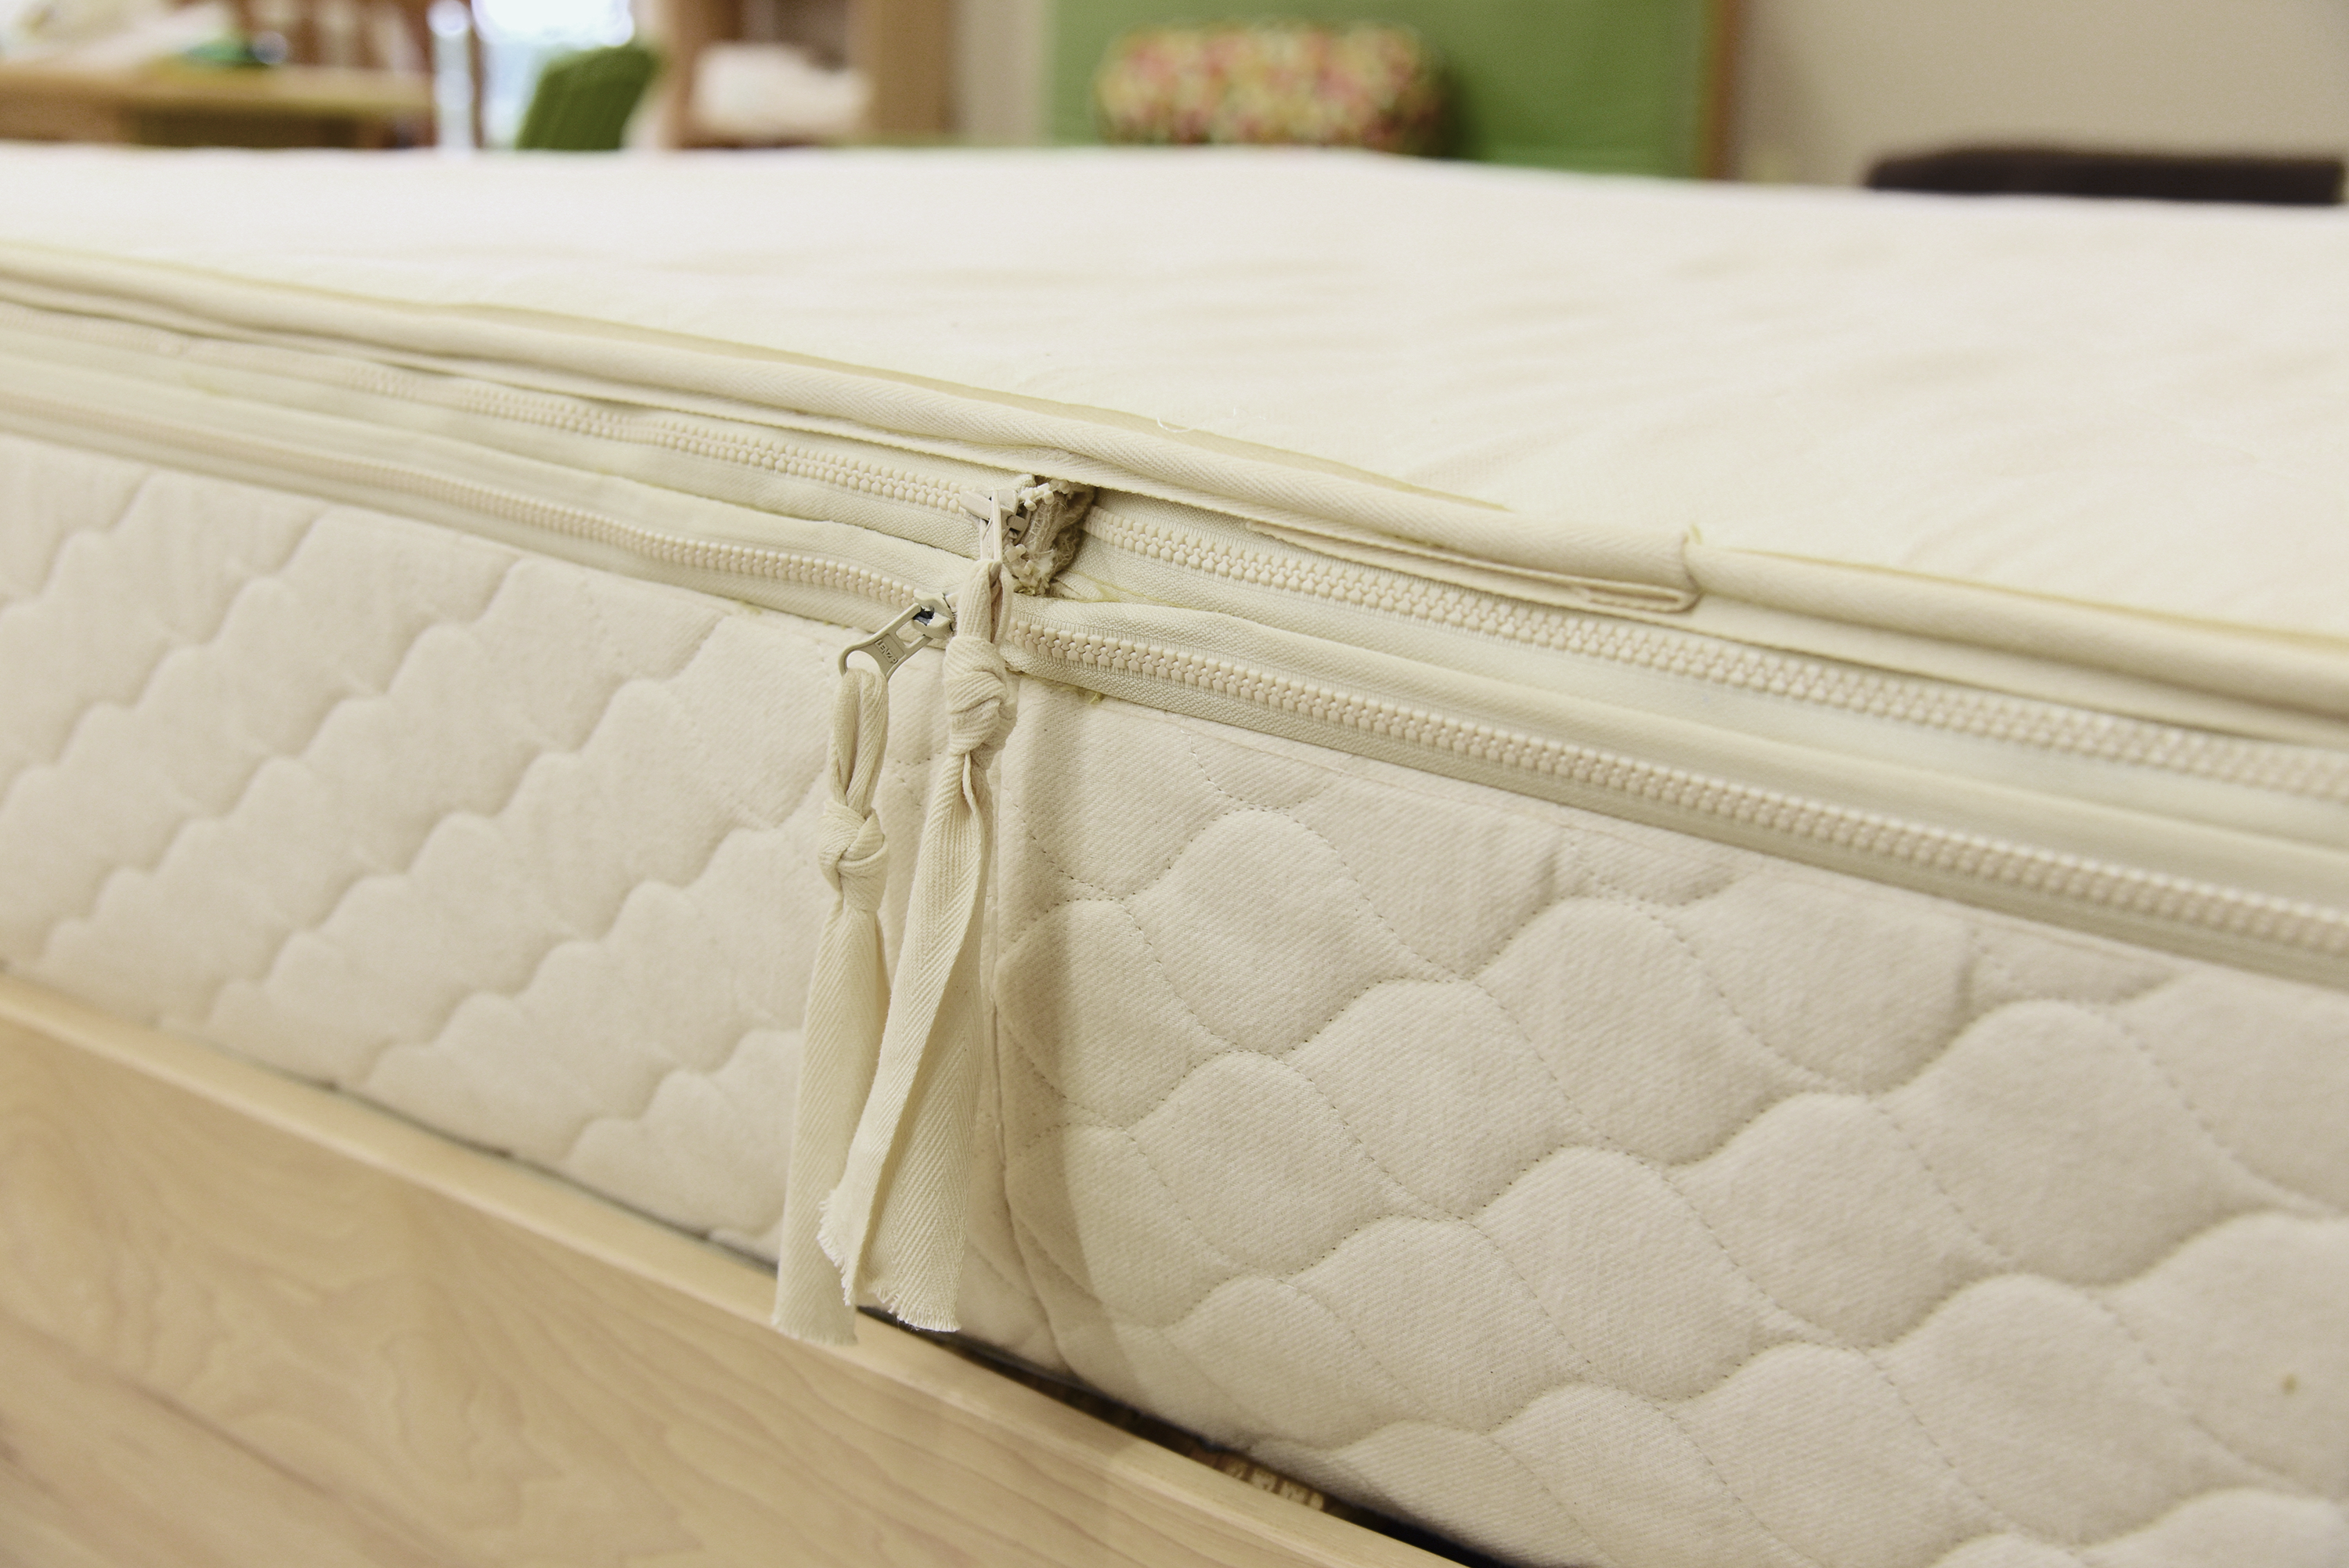 Organic Ozark 2-Layer Mattress quilted mattress expandable zippered casings allow you to select the perfect number of layers